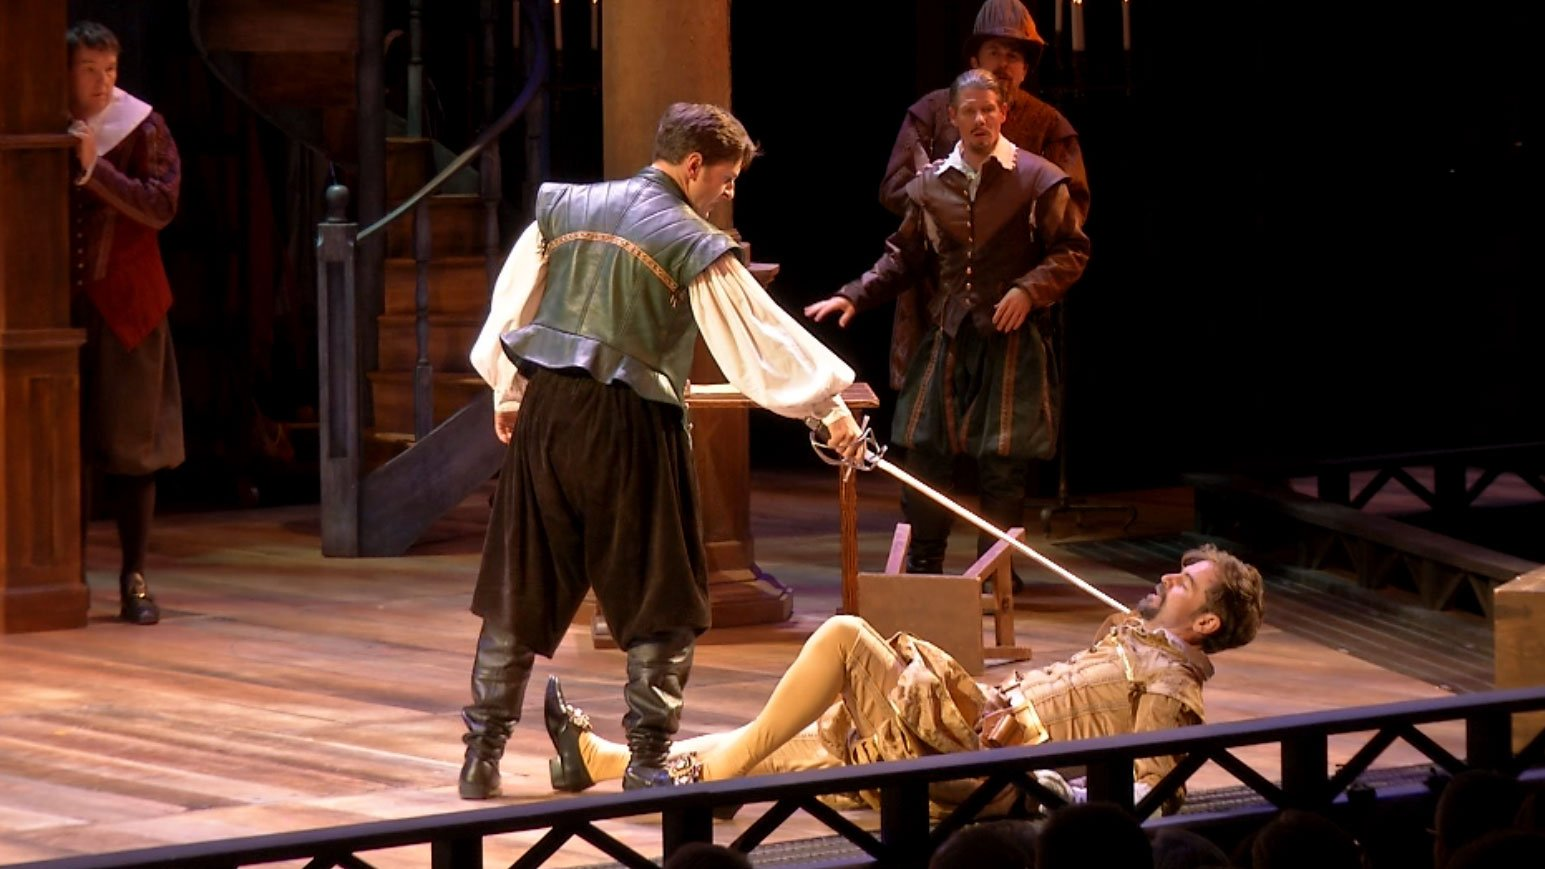 UNLV alumni are amongst the world-class actors taking part in the Utah Shakespeare Festival. (Peter Dawson/FOX5)